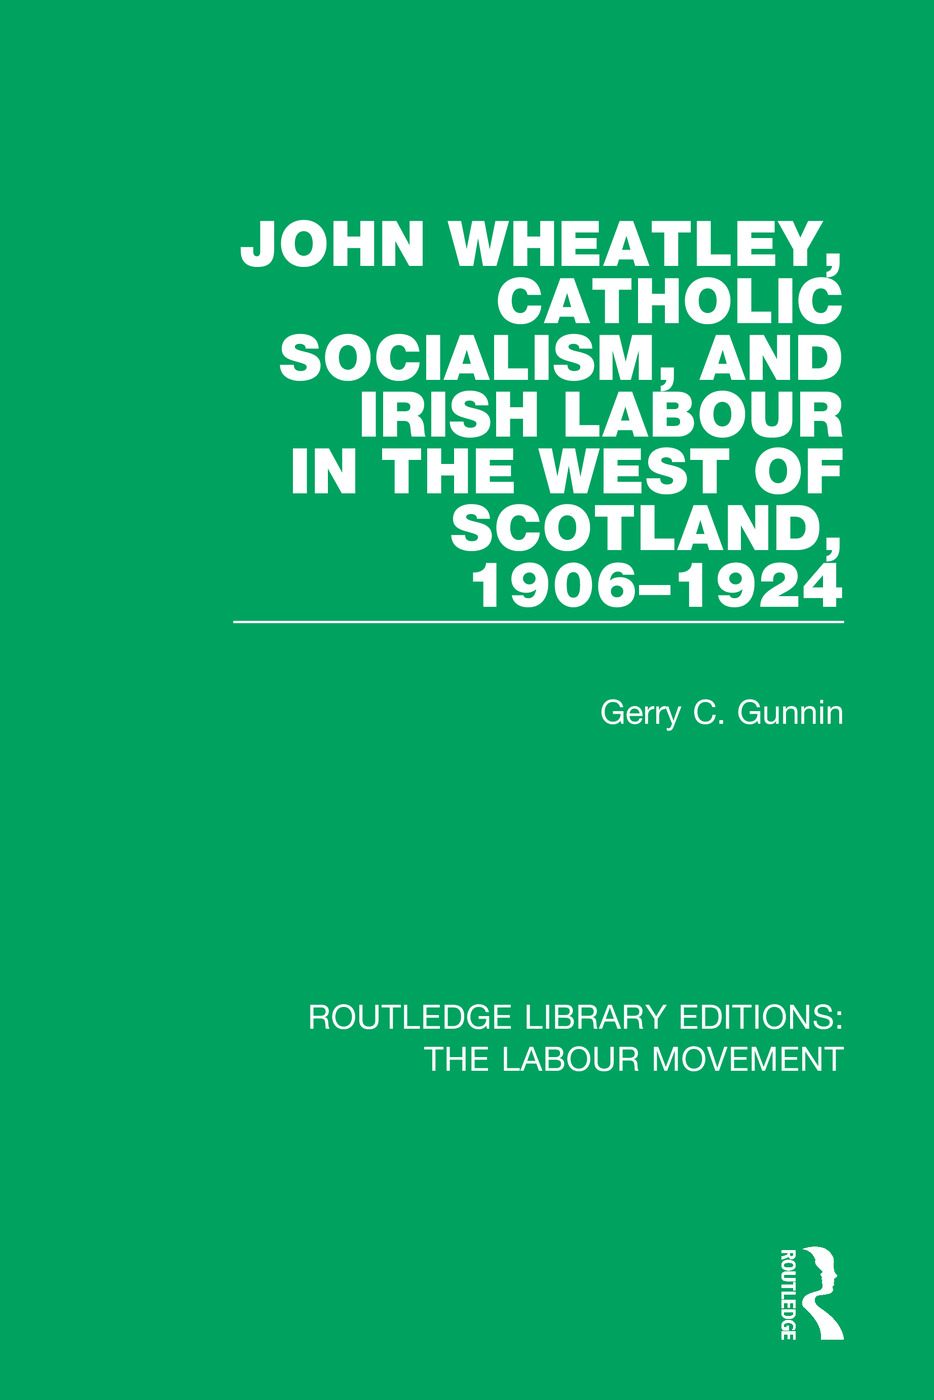 John Wheatley, Catholic Socialism, and Irish Labour in the West of Scotland, 1906-1924 book cover